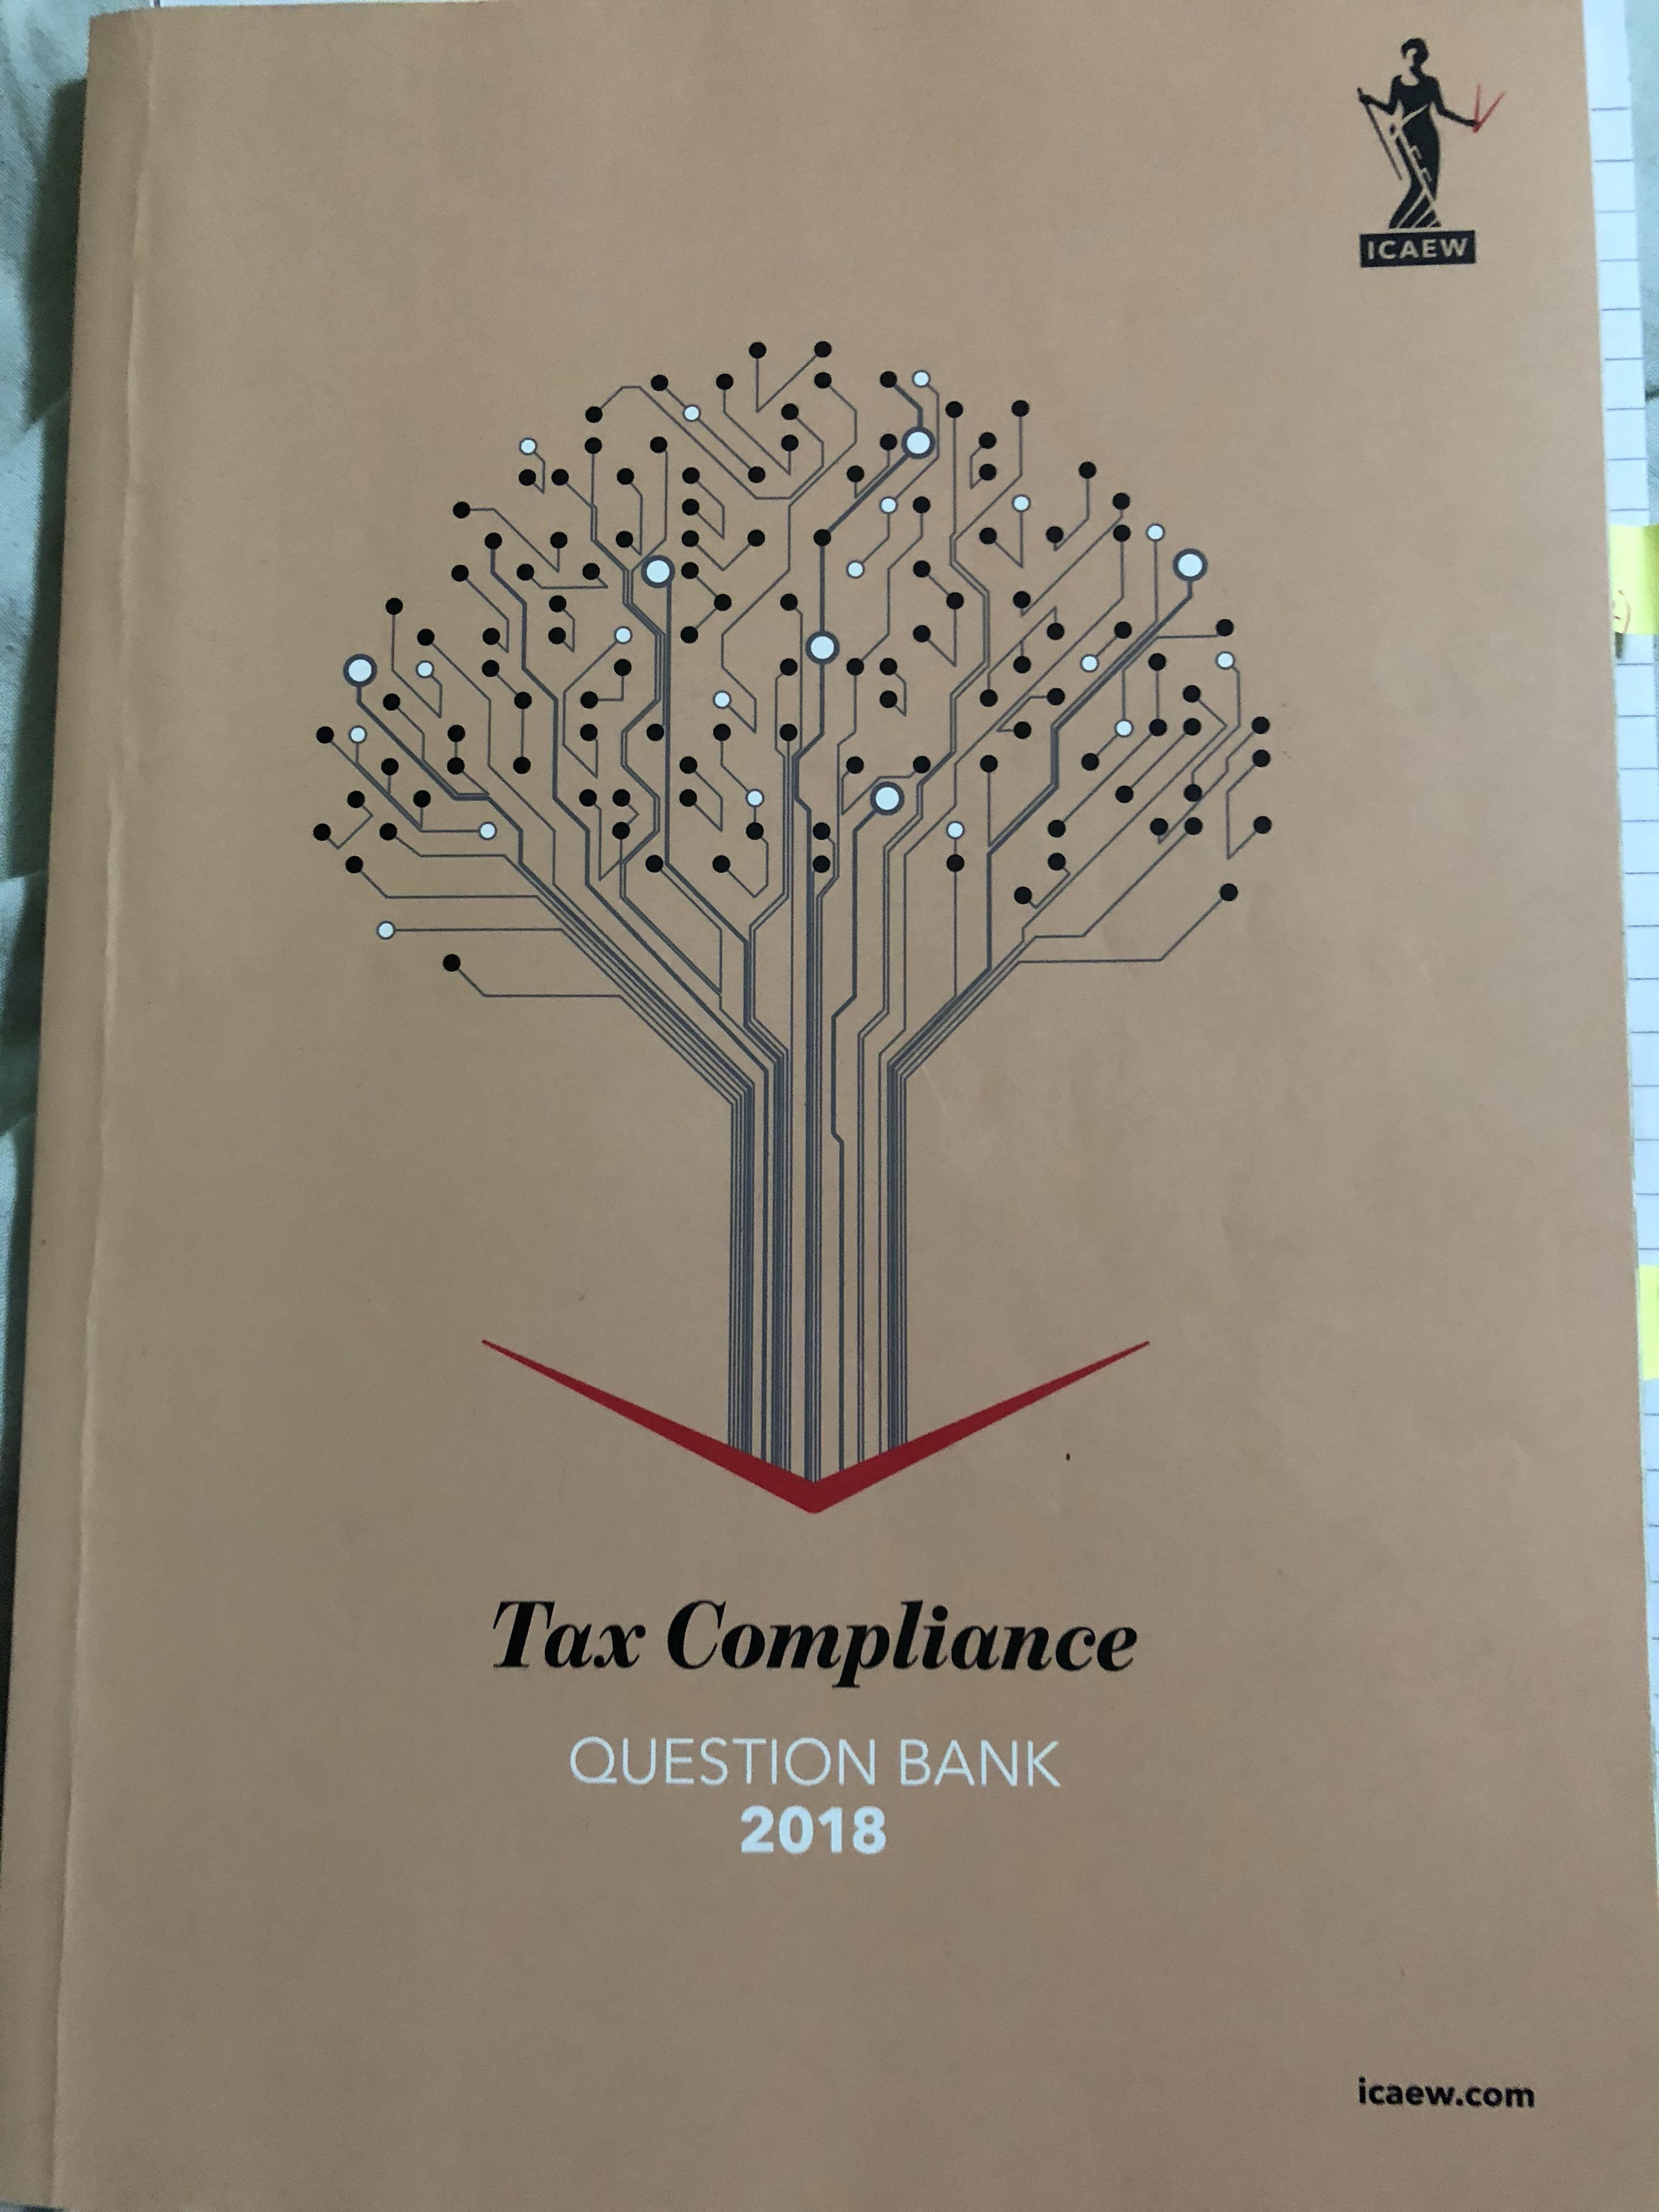 ICAEW - Tax Compliance 2018 question bank